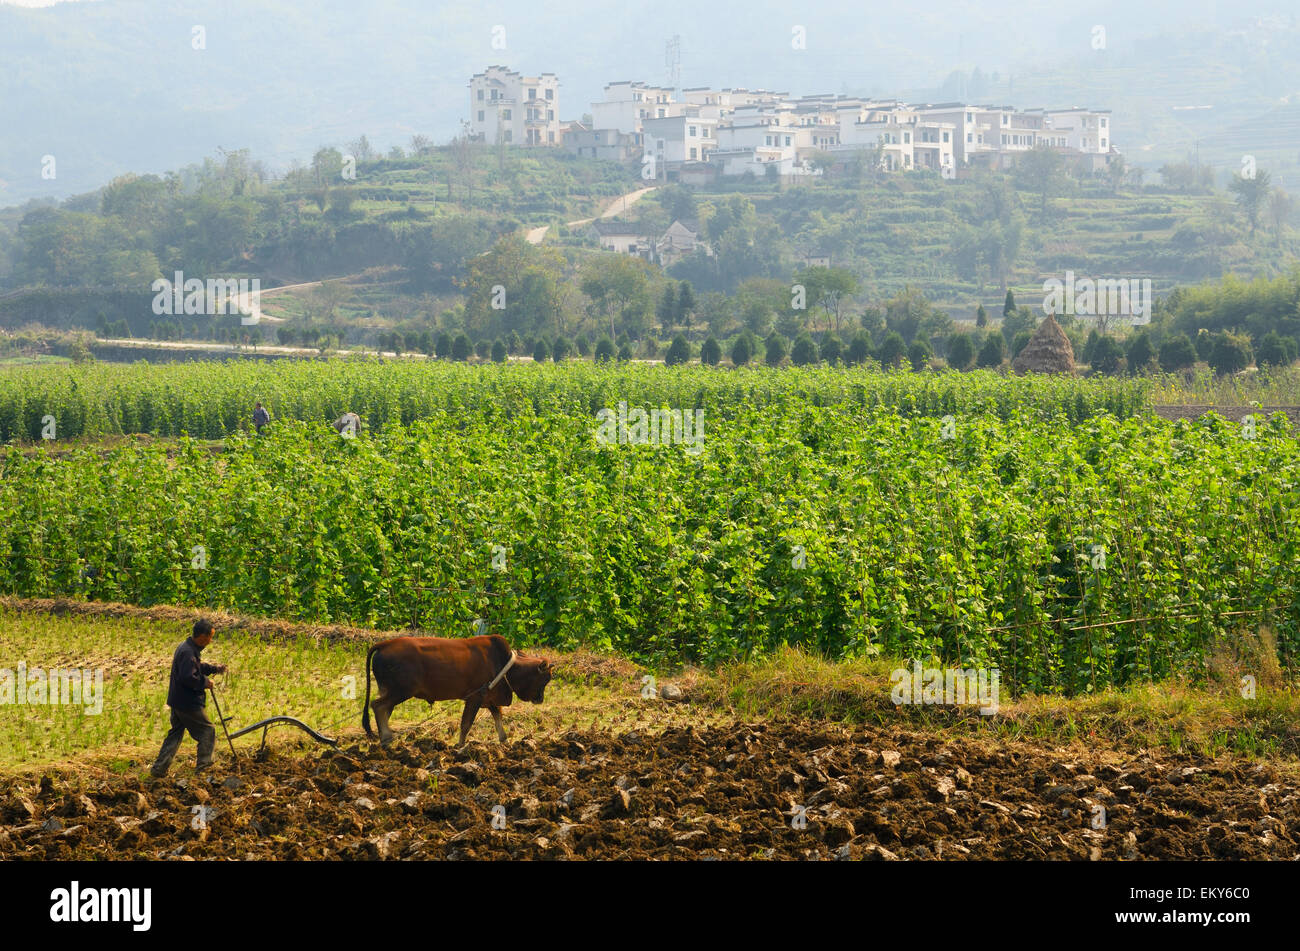 Farmer plowing fields with Bull Ox on rich valley farmland at Yanggancun hilltop village China - Stock Image